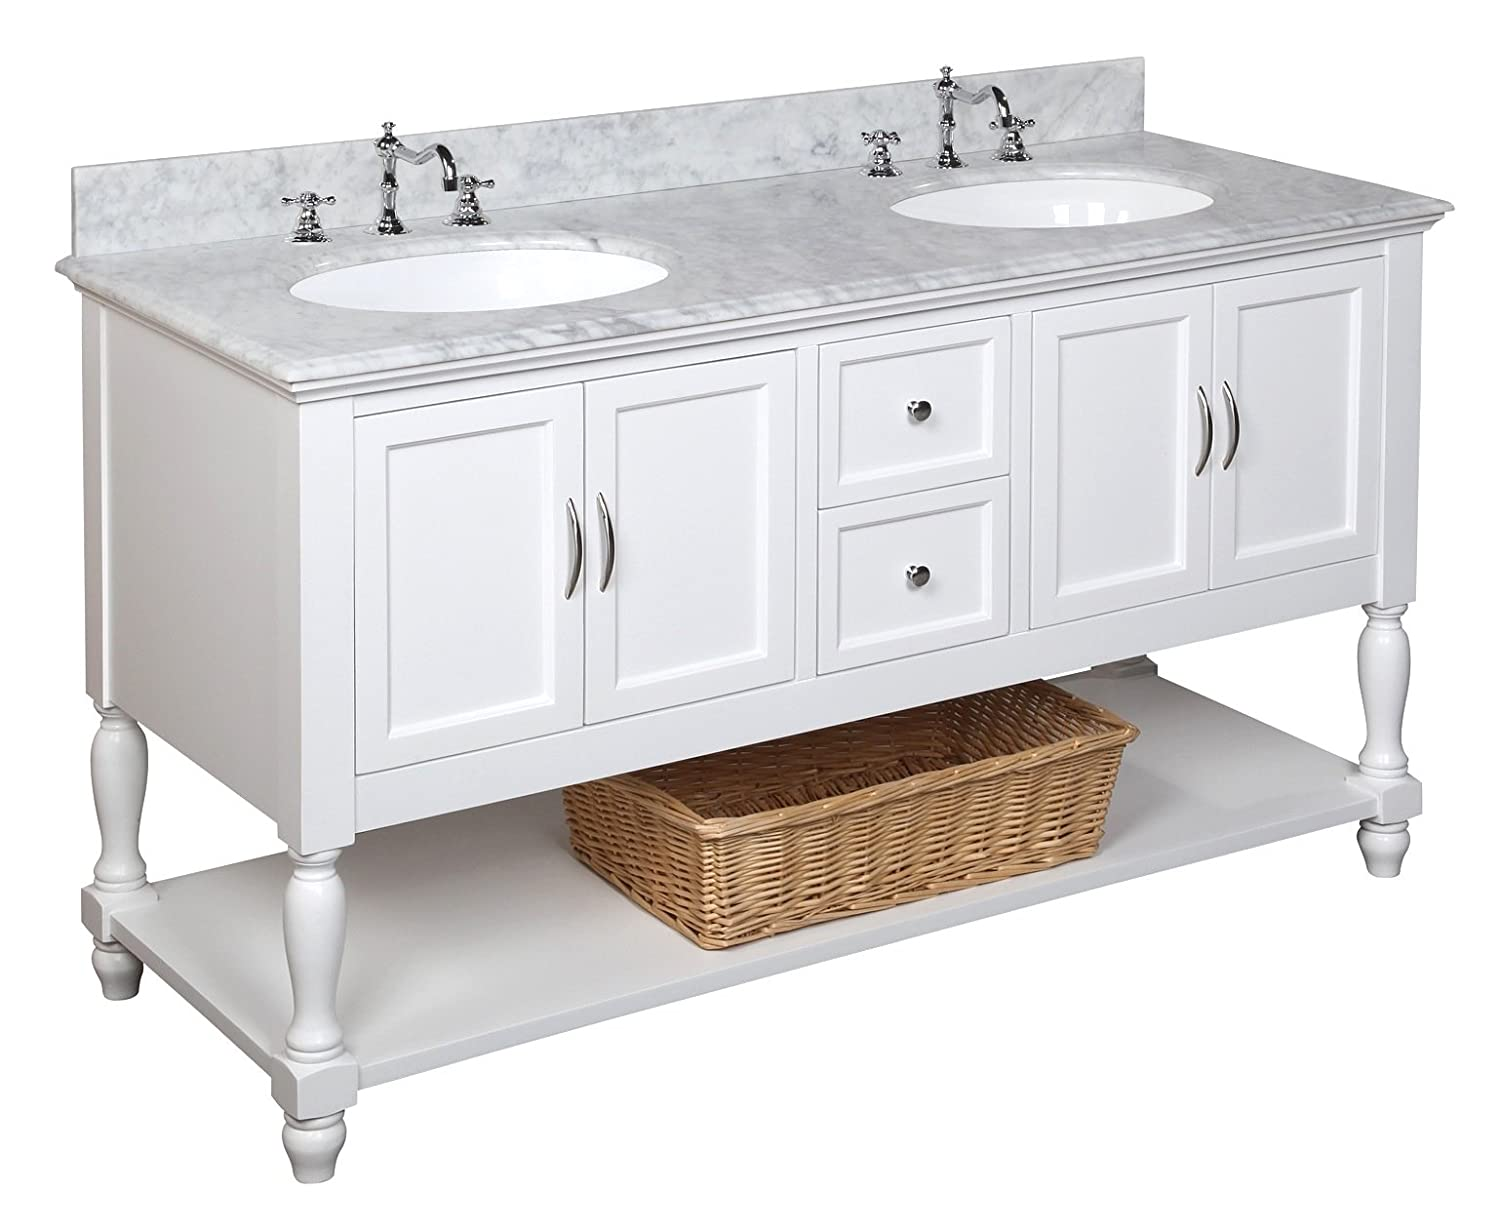 60 double sink bathroom vanity. Kitchen Bath Collection KBC667WTCARR Beverly Double Sink Bathroom Vanity  With Marble Countertop Cabinet Soft Close Function And Undermount Ceramic